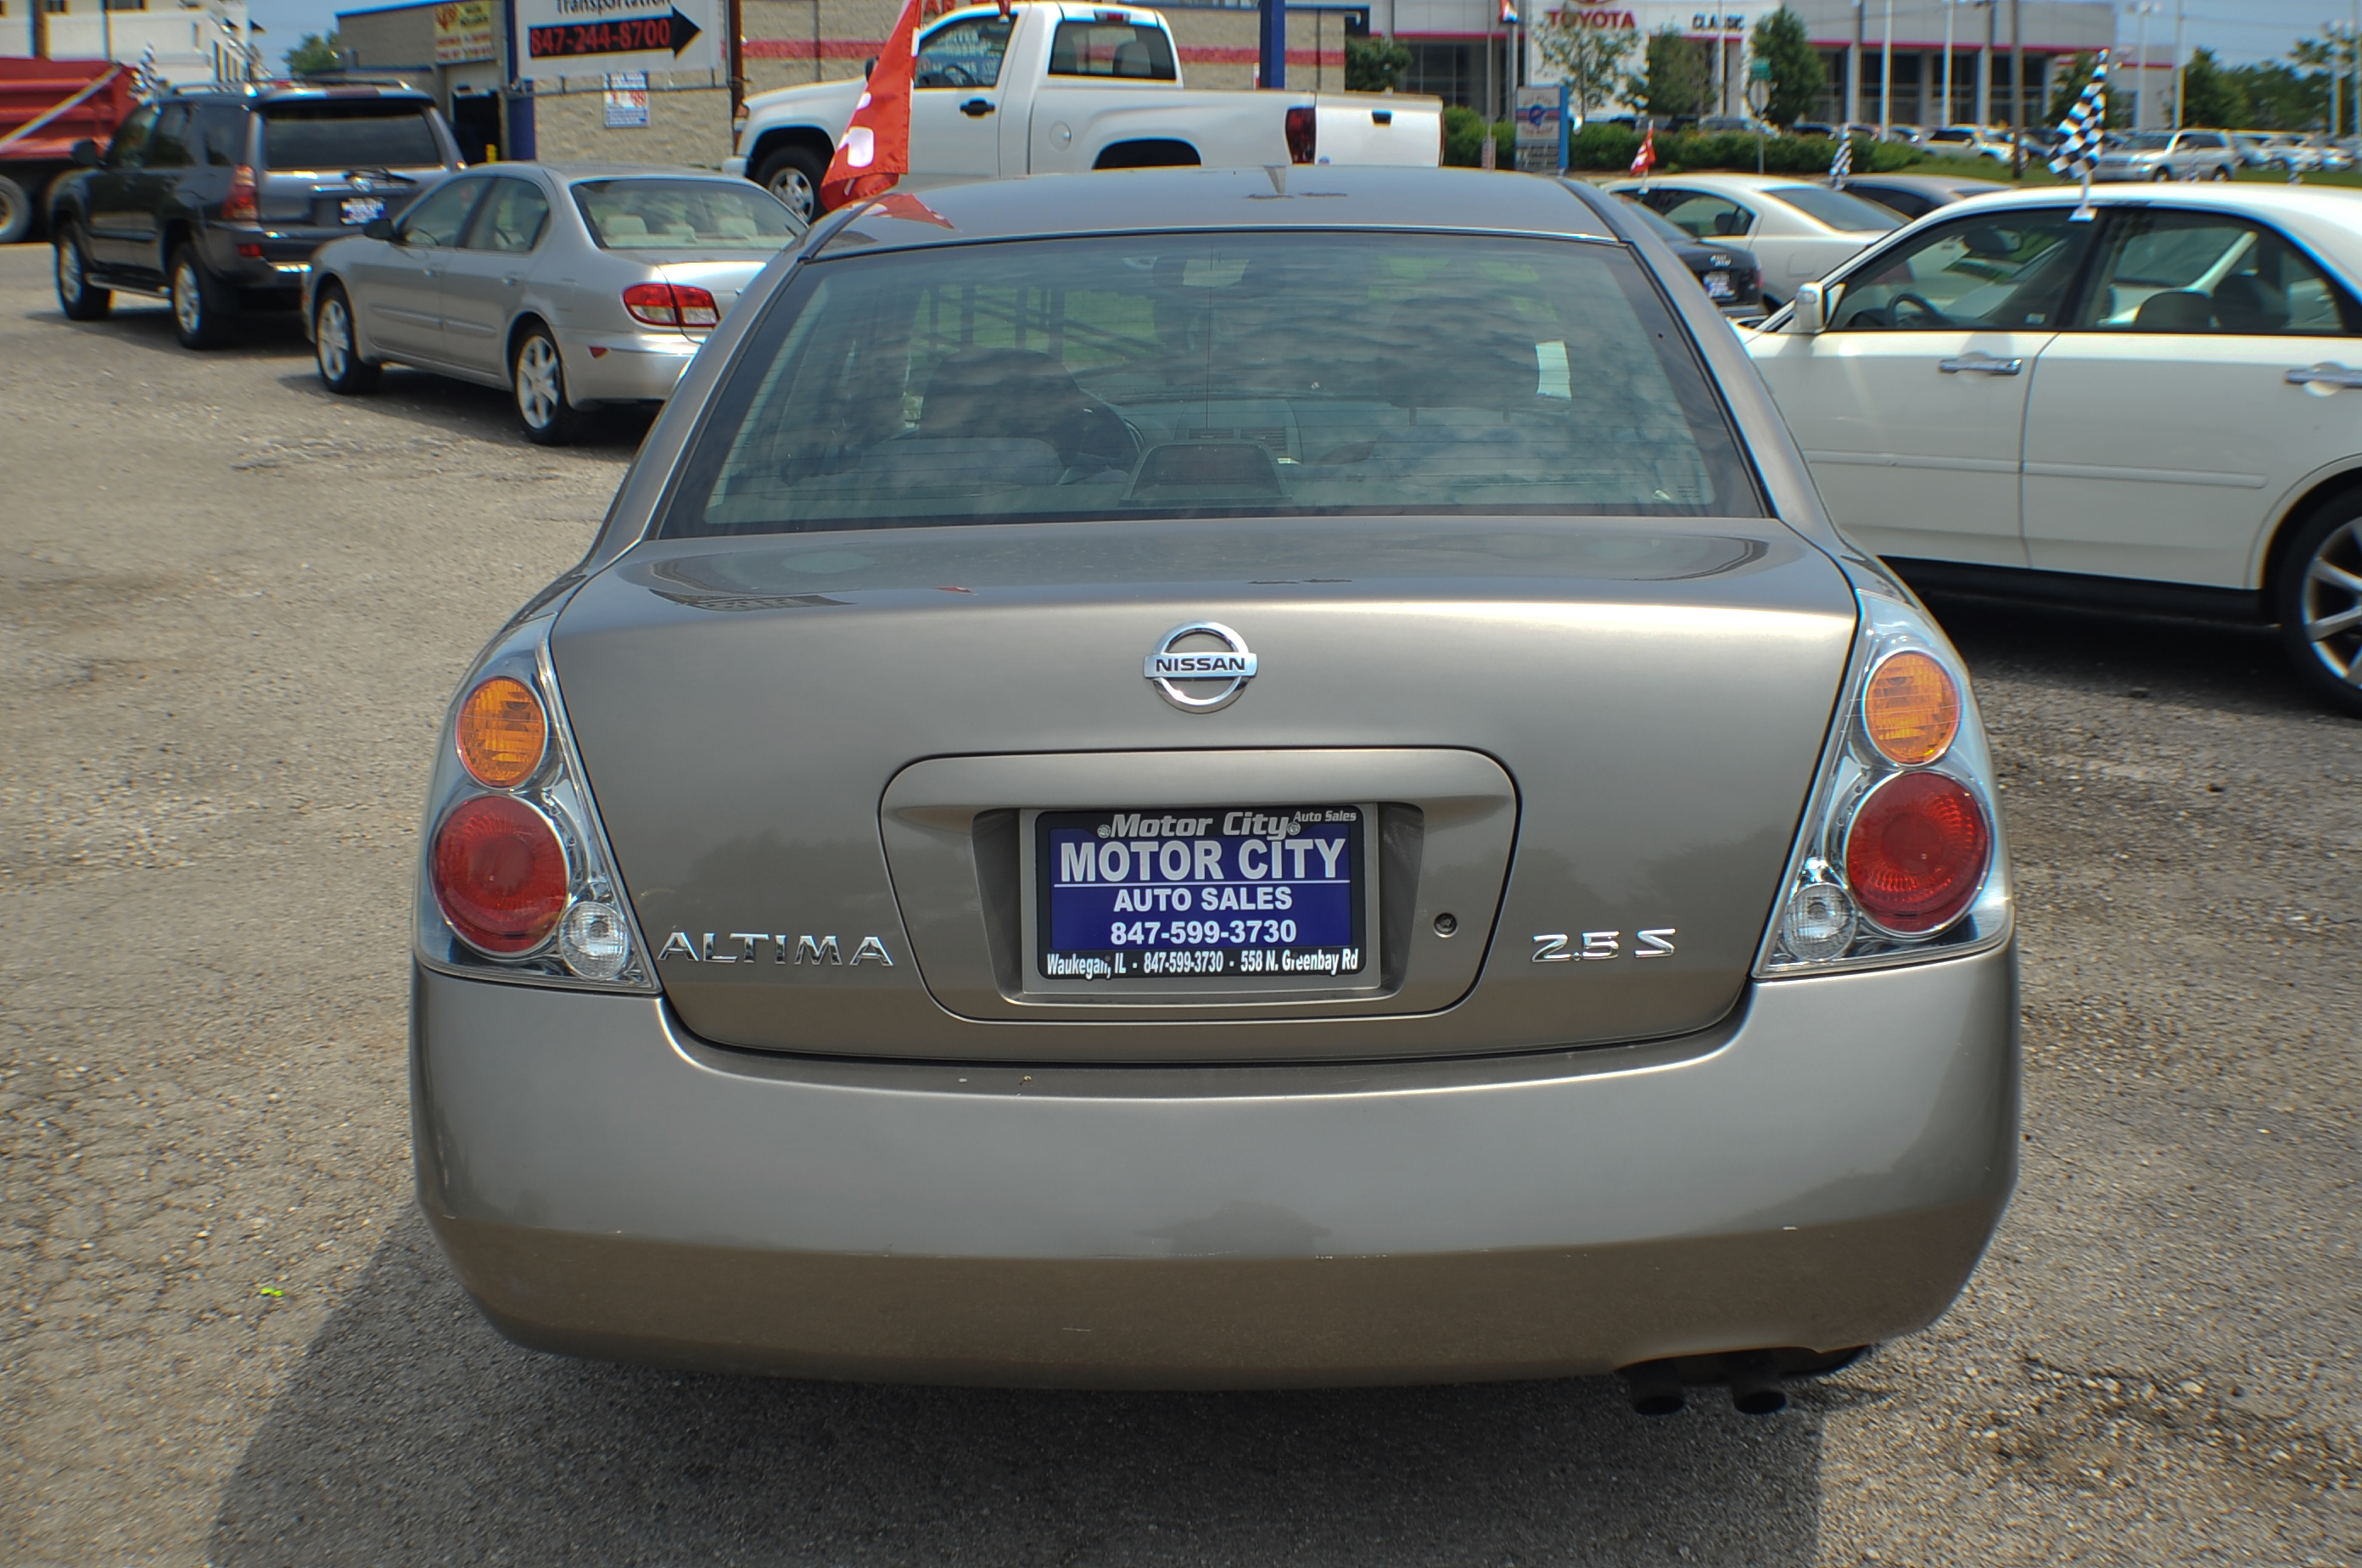 2004 Nissan Altima 2.5S Sand Sedan Used Car Sale Waukegan Kenosha